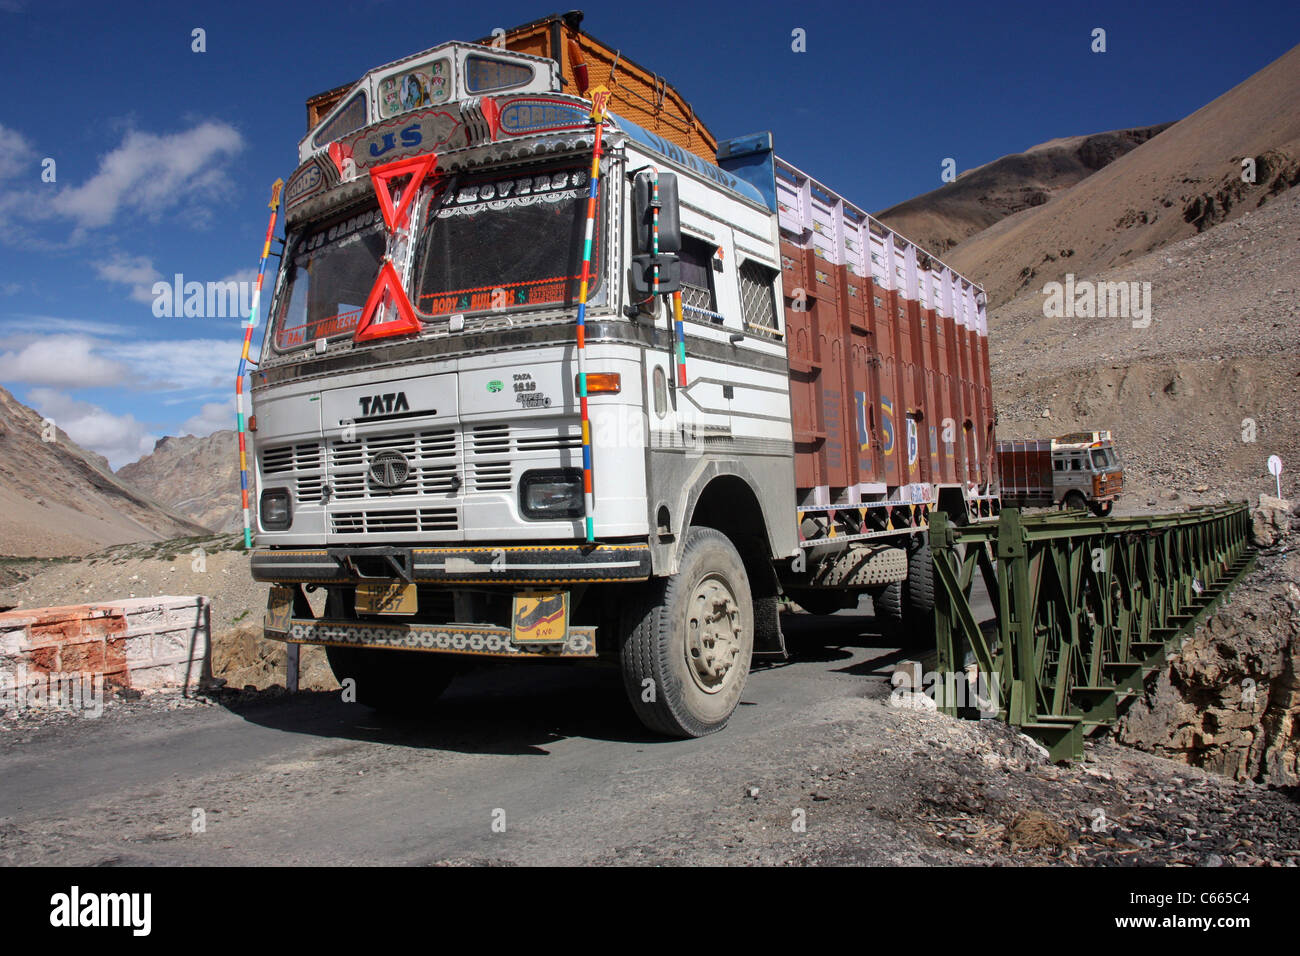 Decorated Tata 1613 truck crossing a bridge in the Himalayas on the  hazardous road to Leh, Ladakh northern India